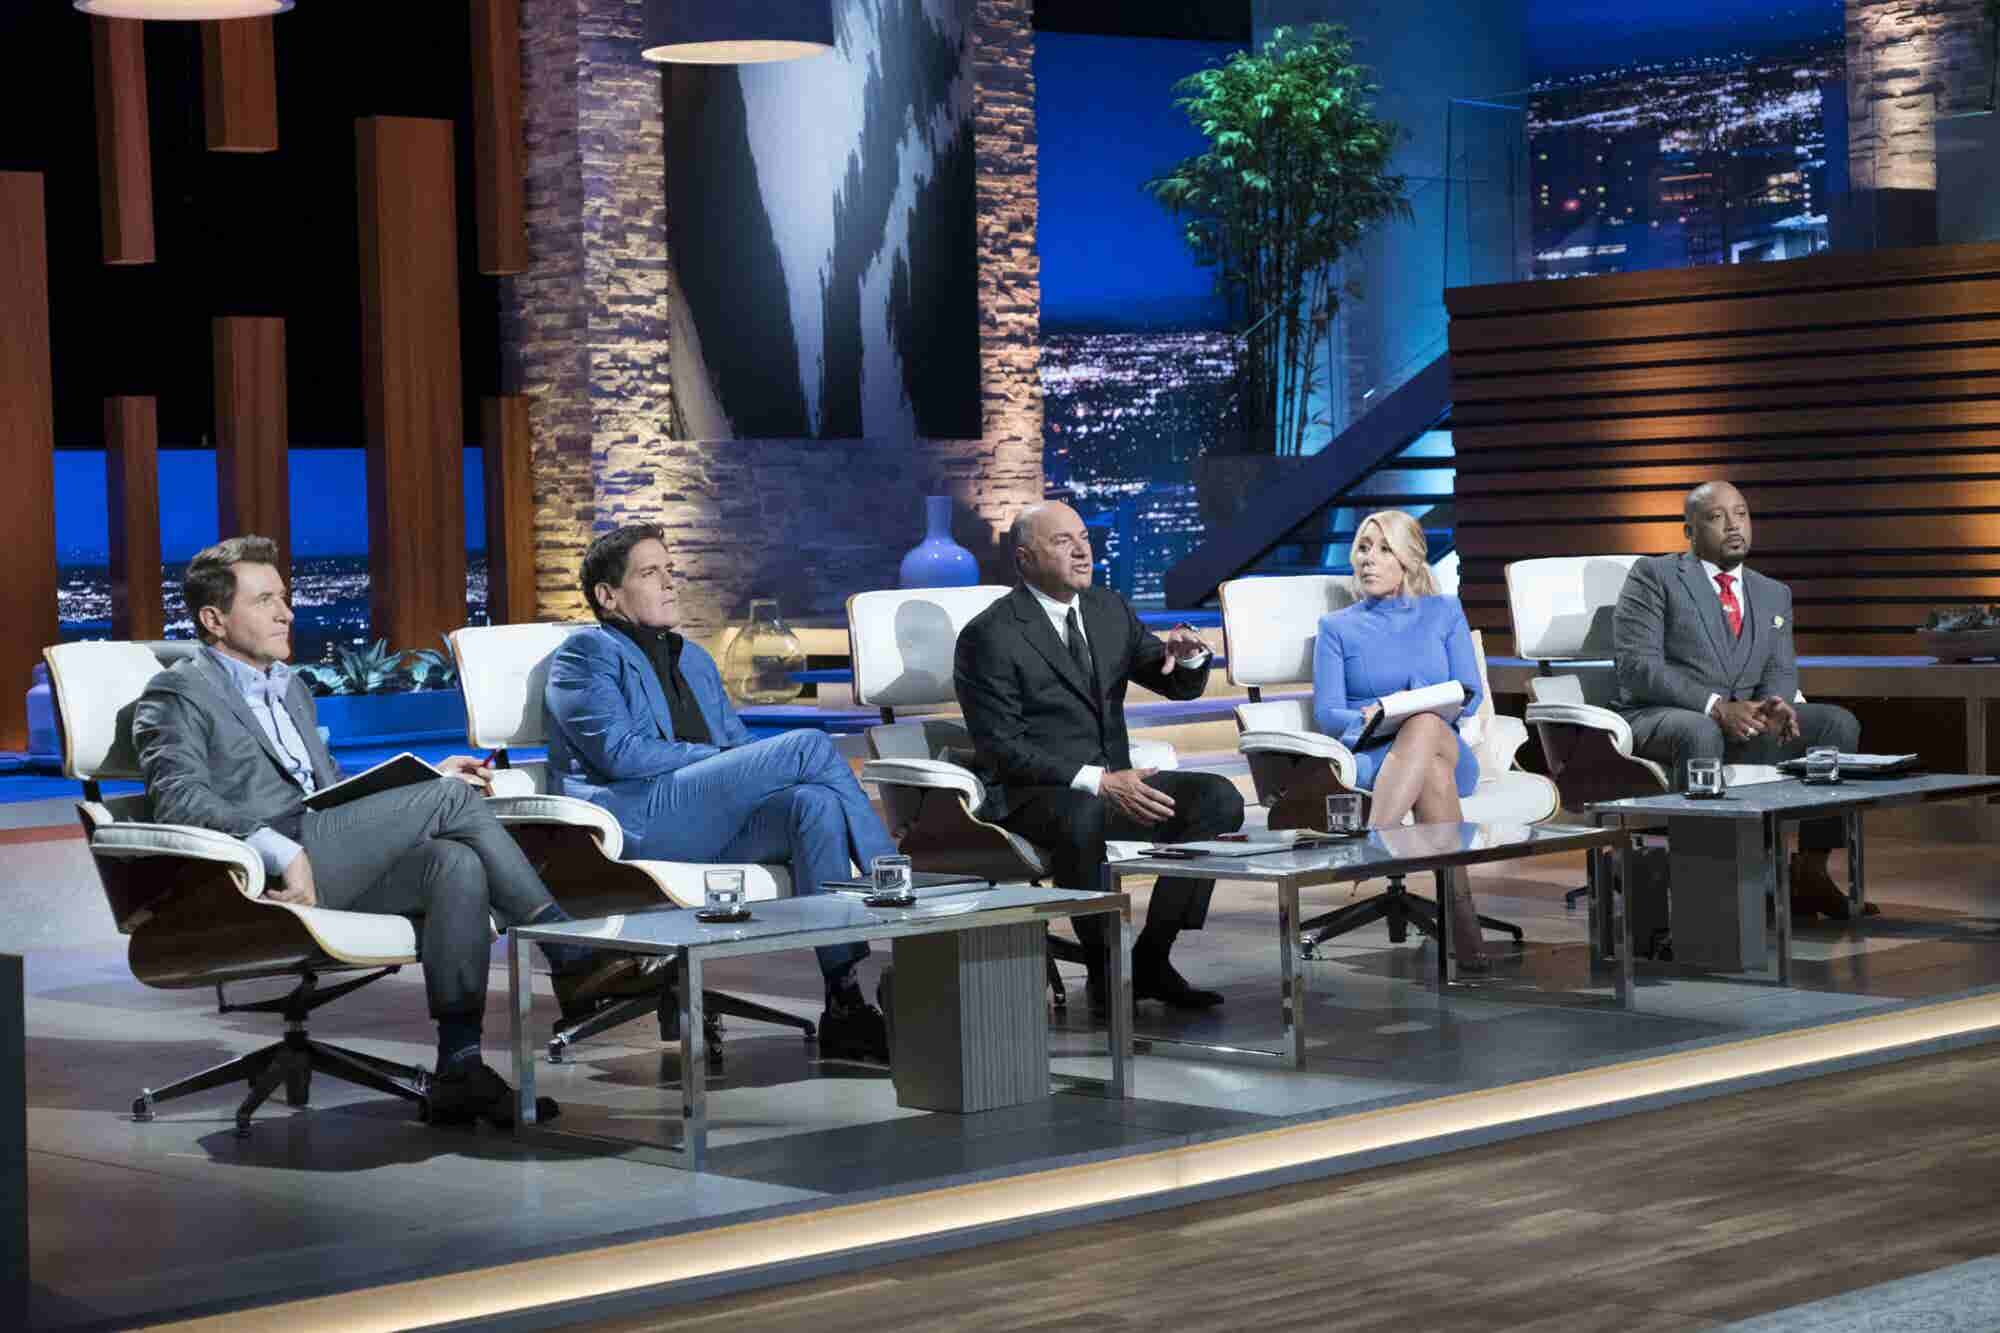 5 Ways to Get Your Business Featured on Reality TV